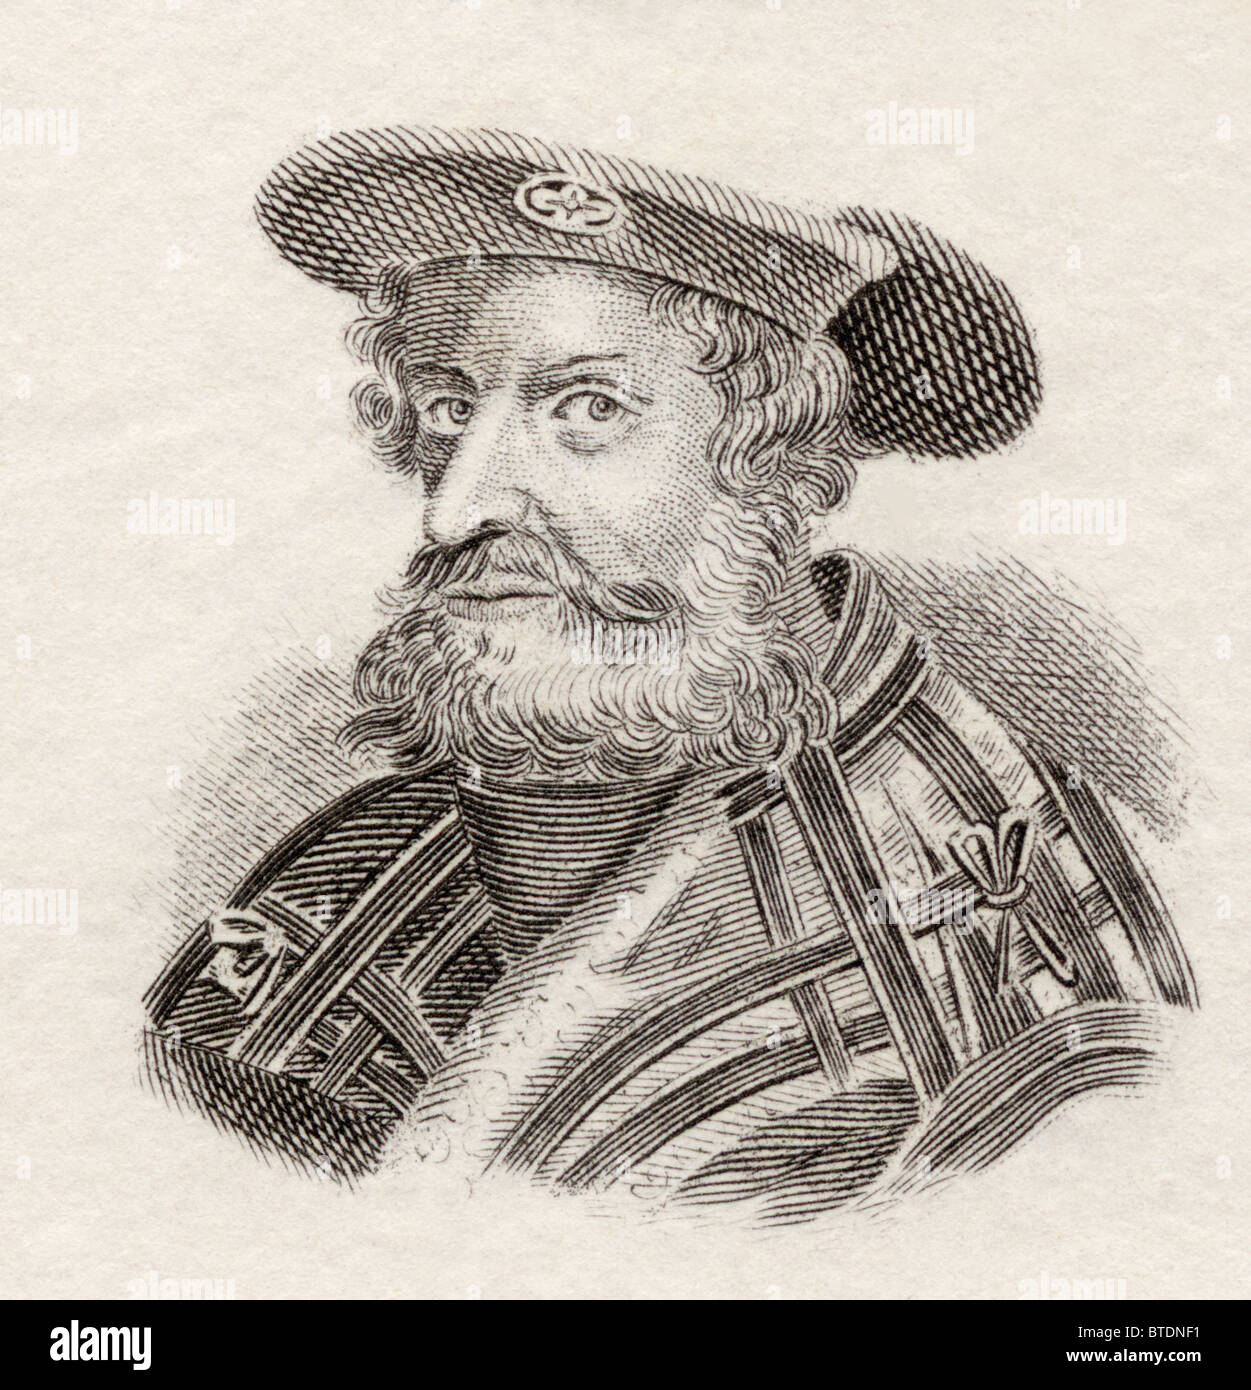 Claudius Ptolemaeus, or Ptolemy, c. AD 90 to c.168. Roman mathematician, astronomer, geographer and astrologer. - Stock Image